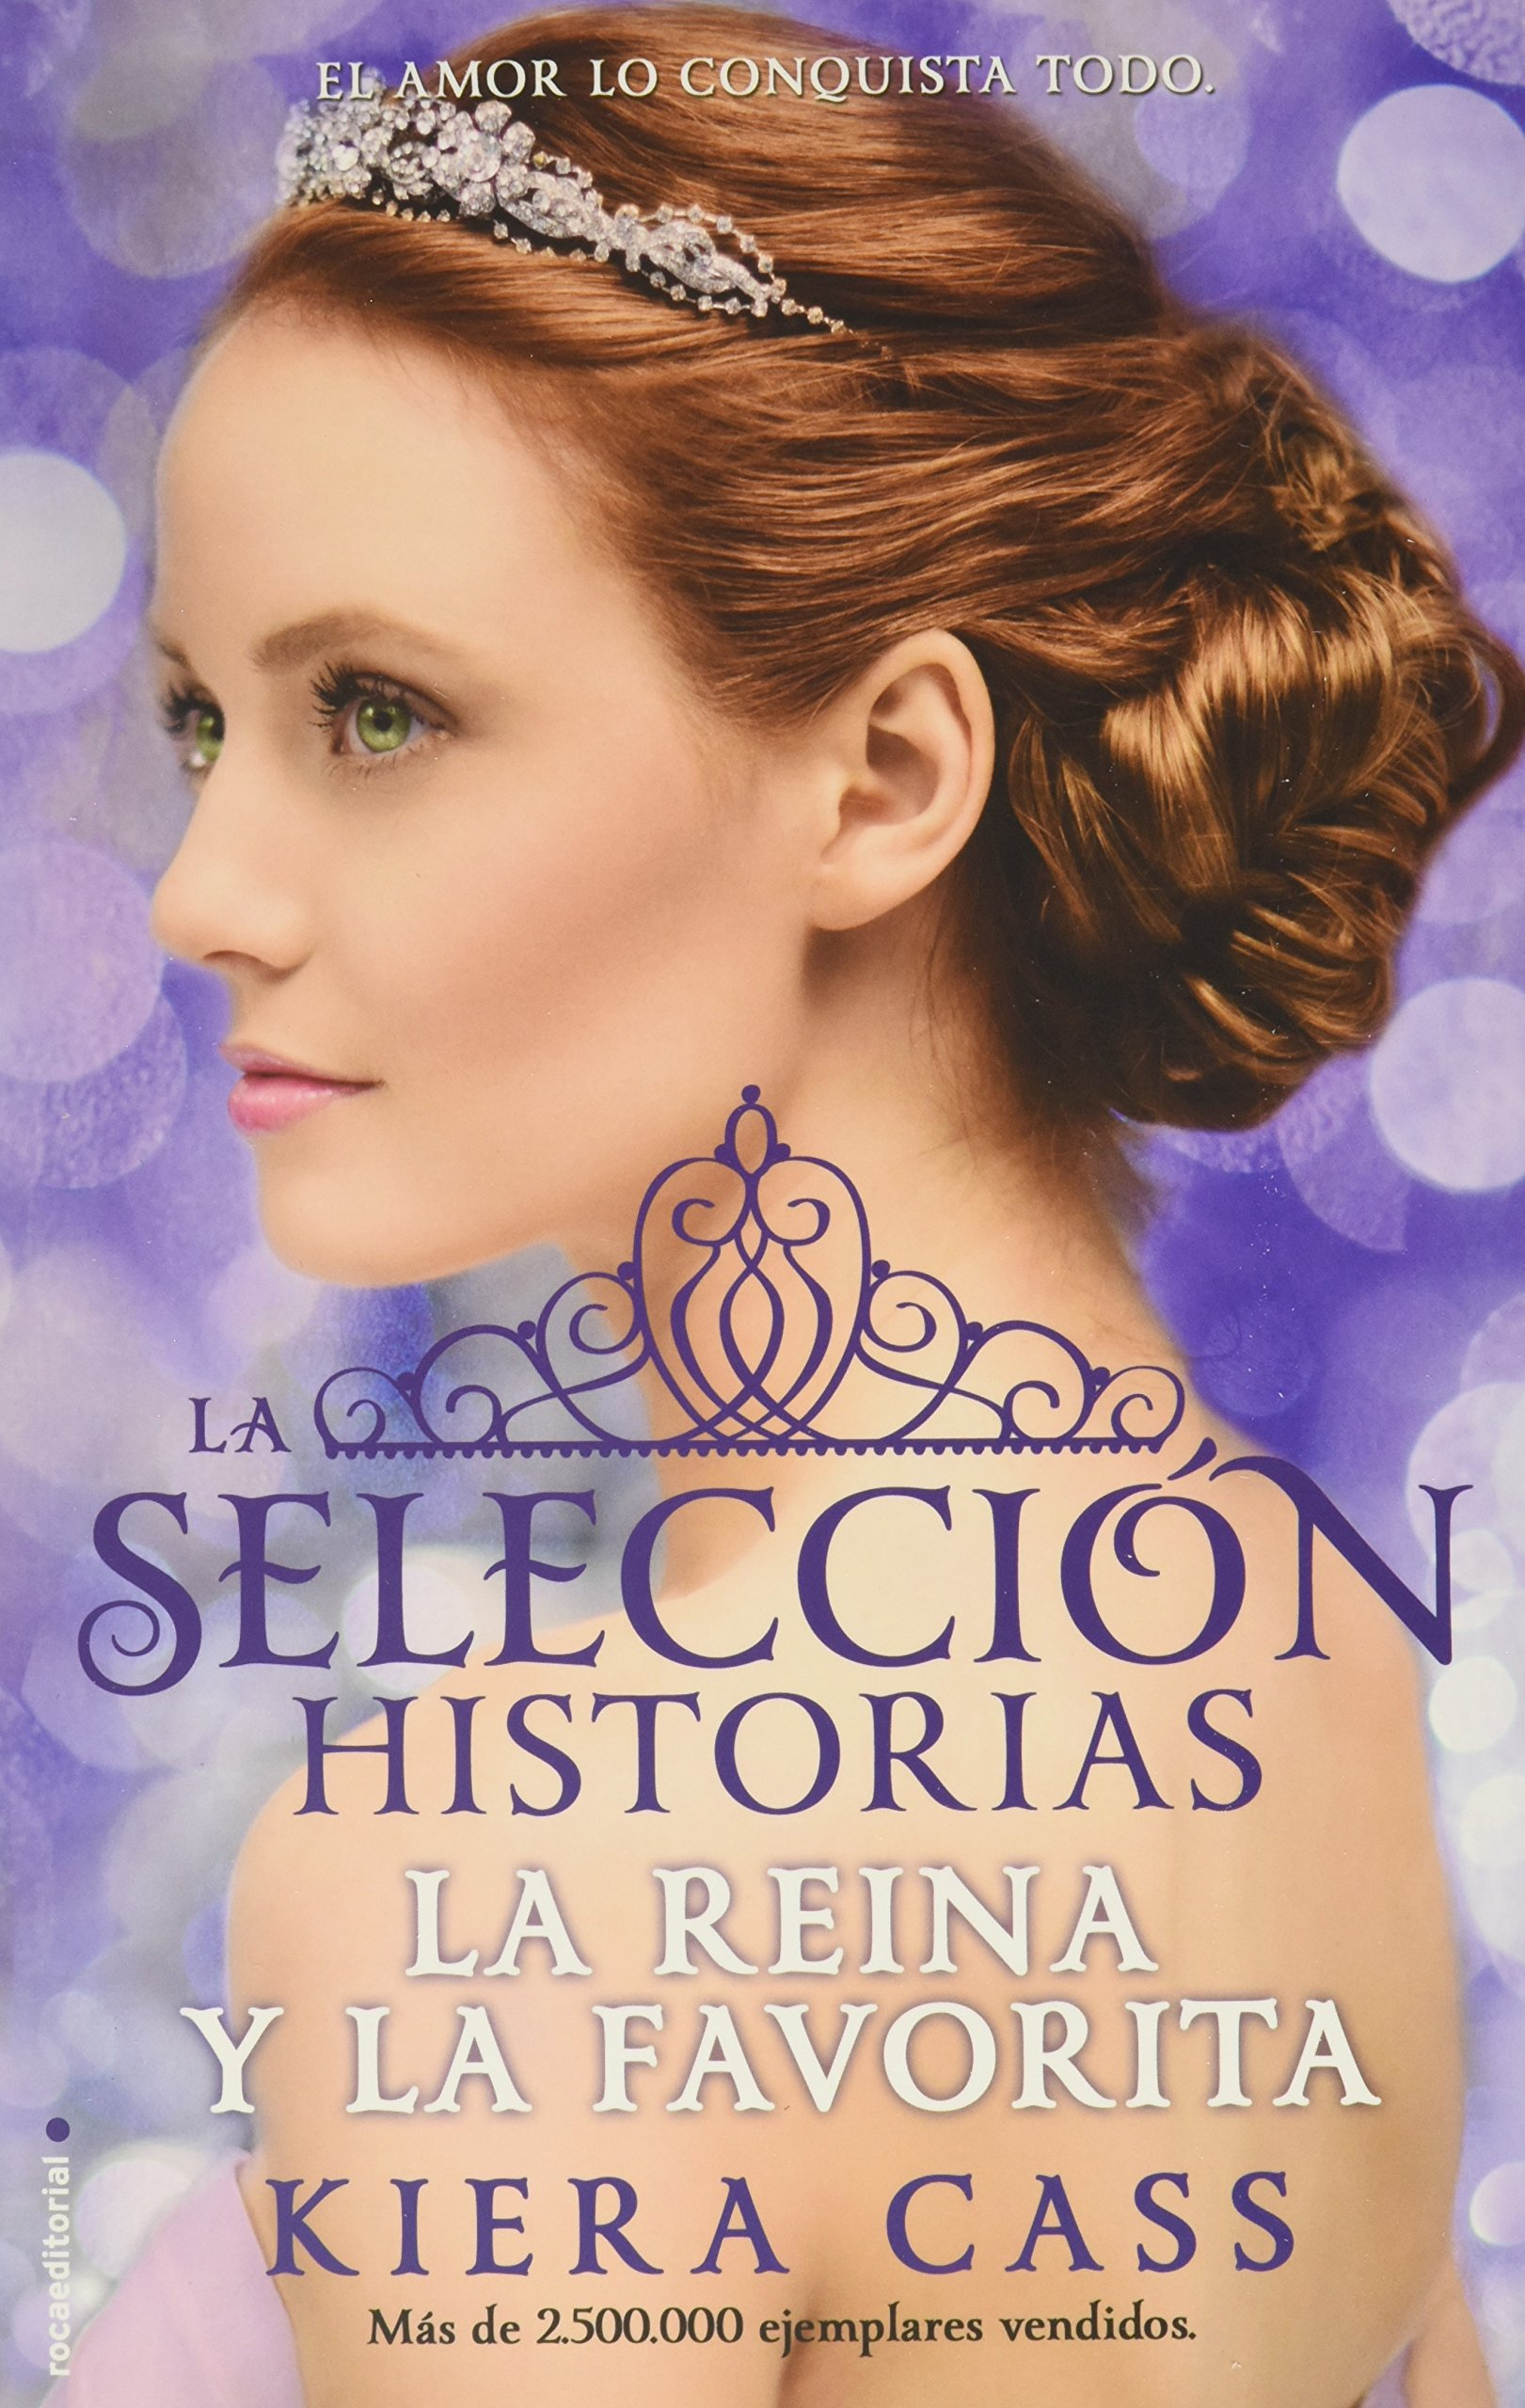 Historia De La Selecci·n - La reina y la favorita - Volumen 2 (Junior - Juvenil (roca) (Historias De La Seleccion/ the Selection Stories) (Spanish ...